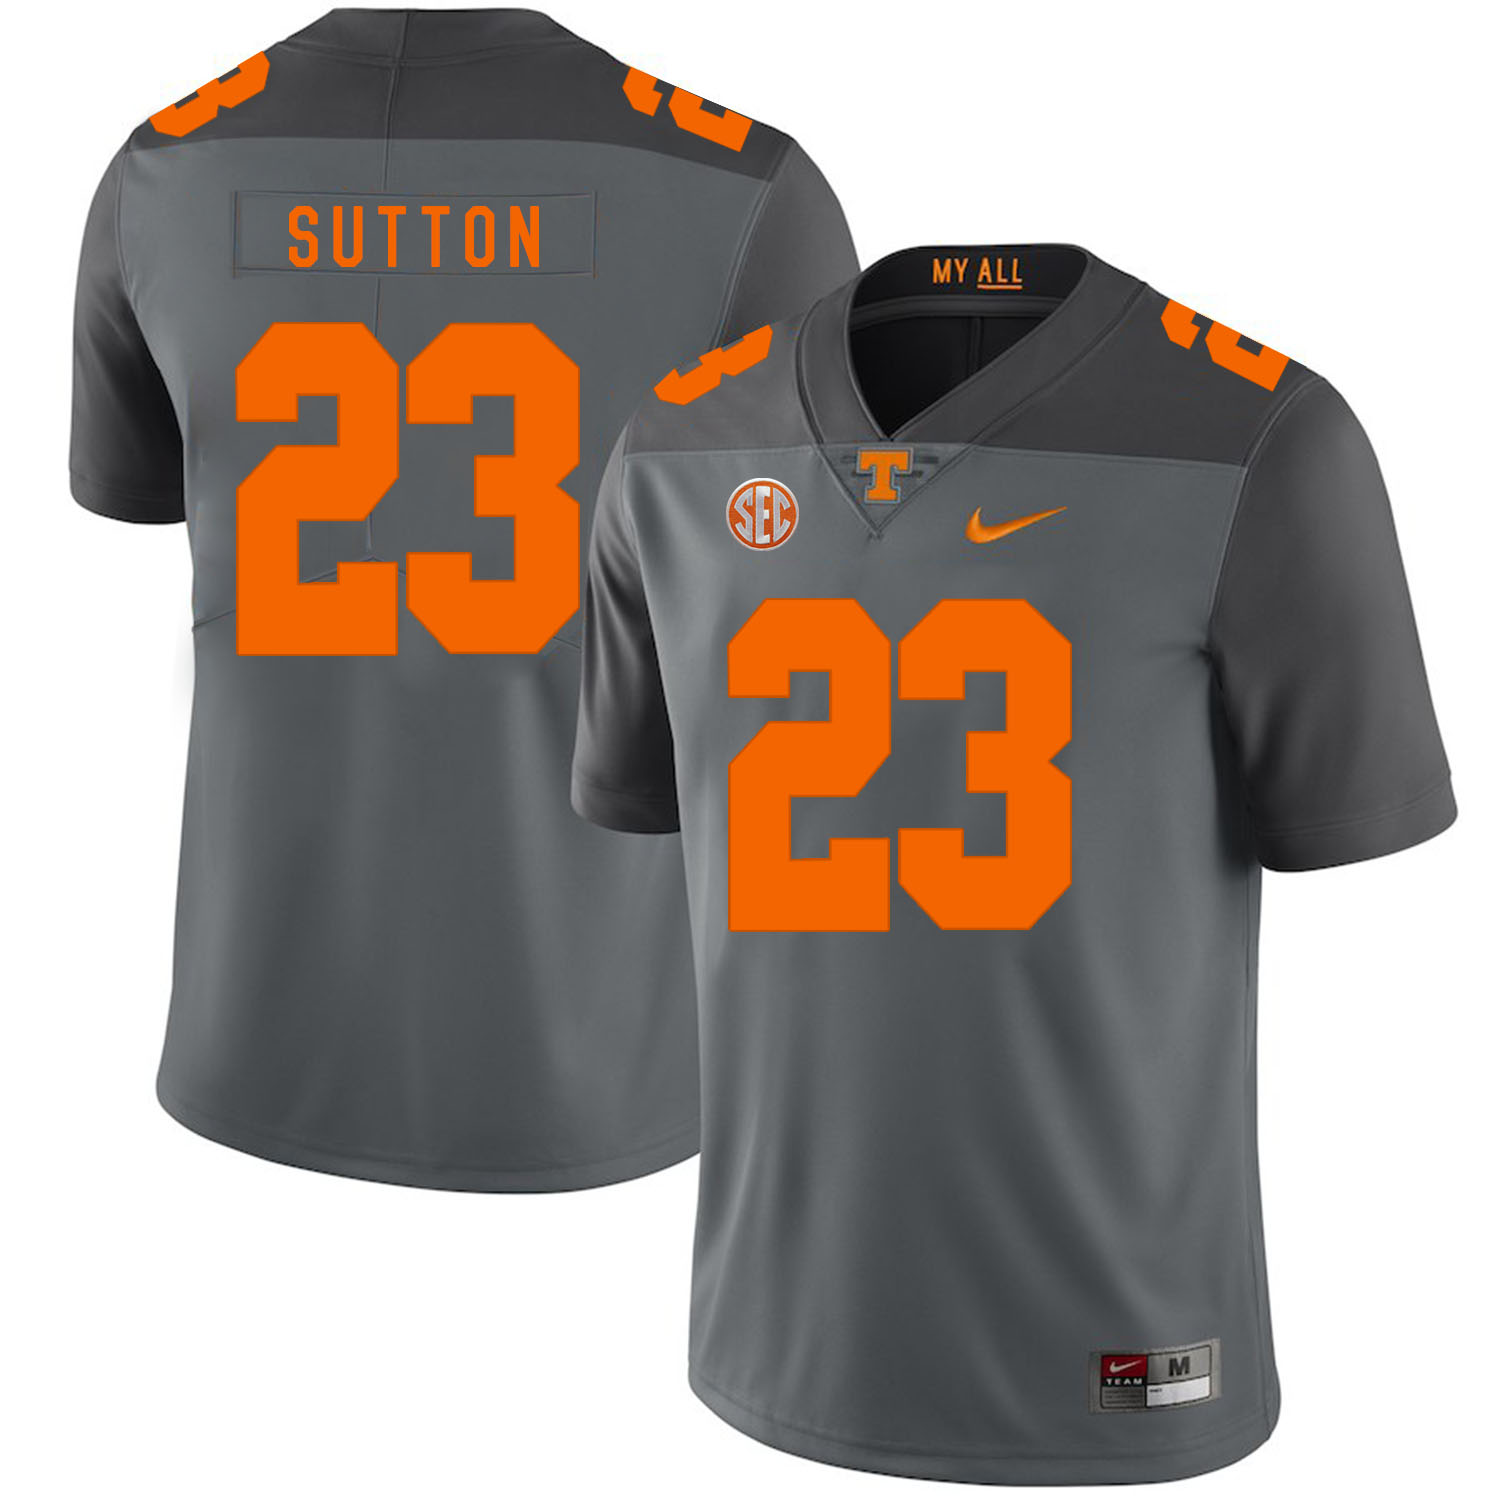 Tennessee Volunteers 23 Cameron Sutton Gray Nike College Football Jersey